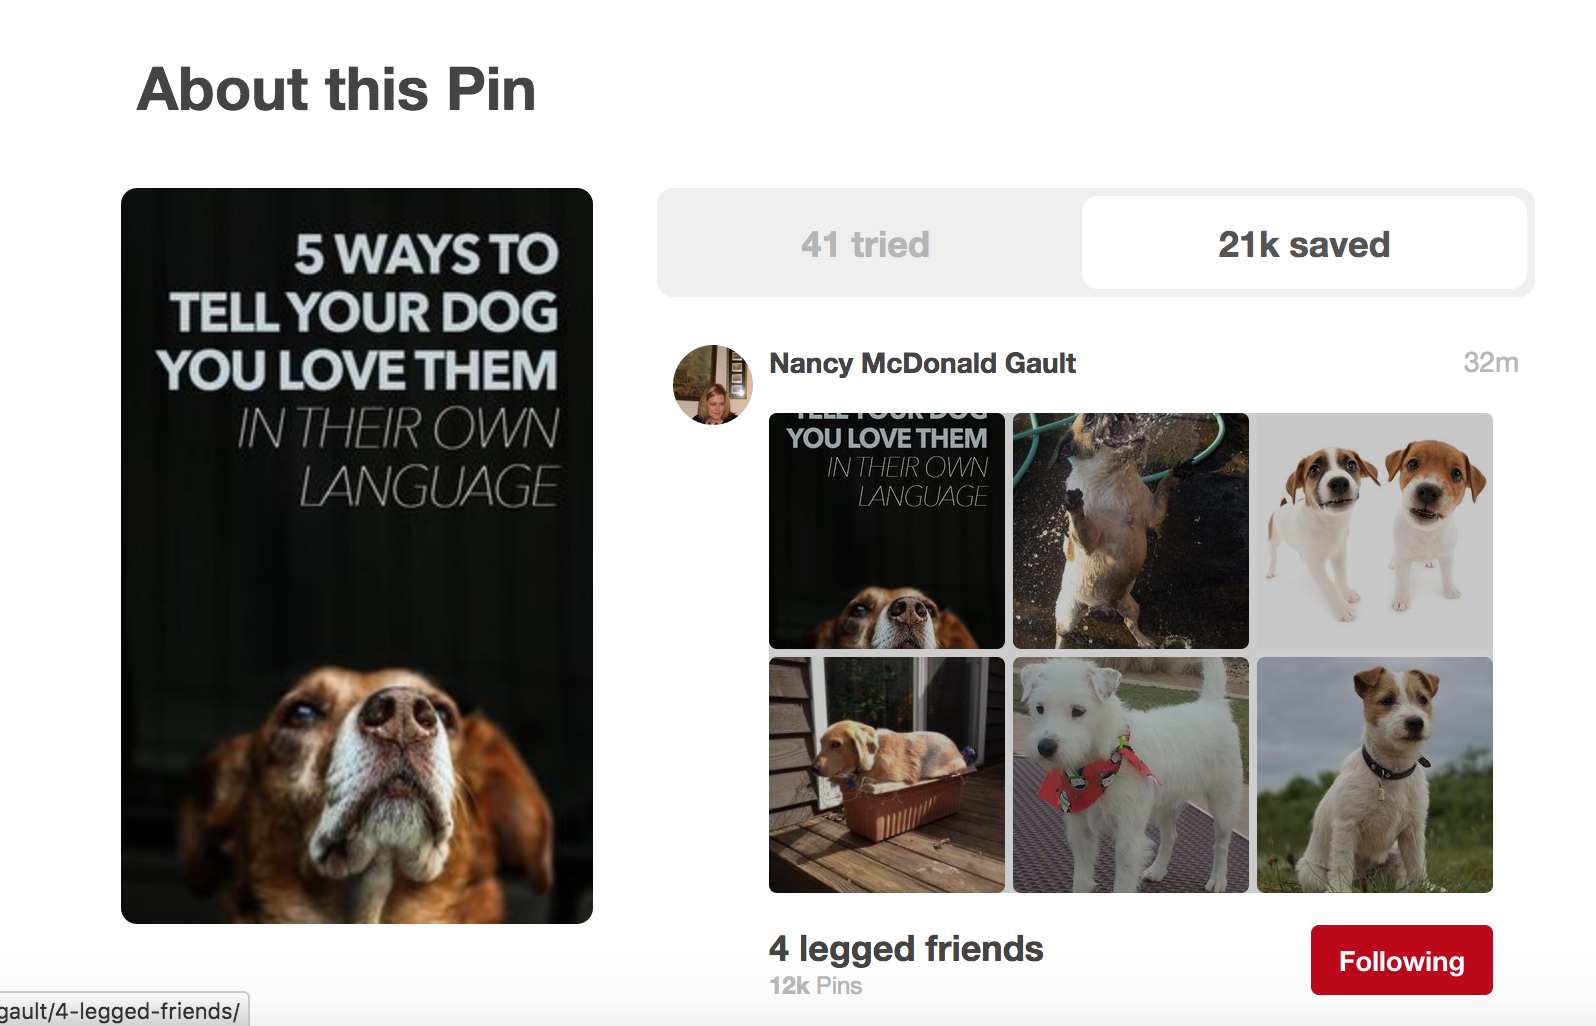 About this pin on Pinterest